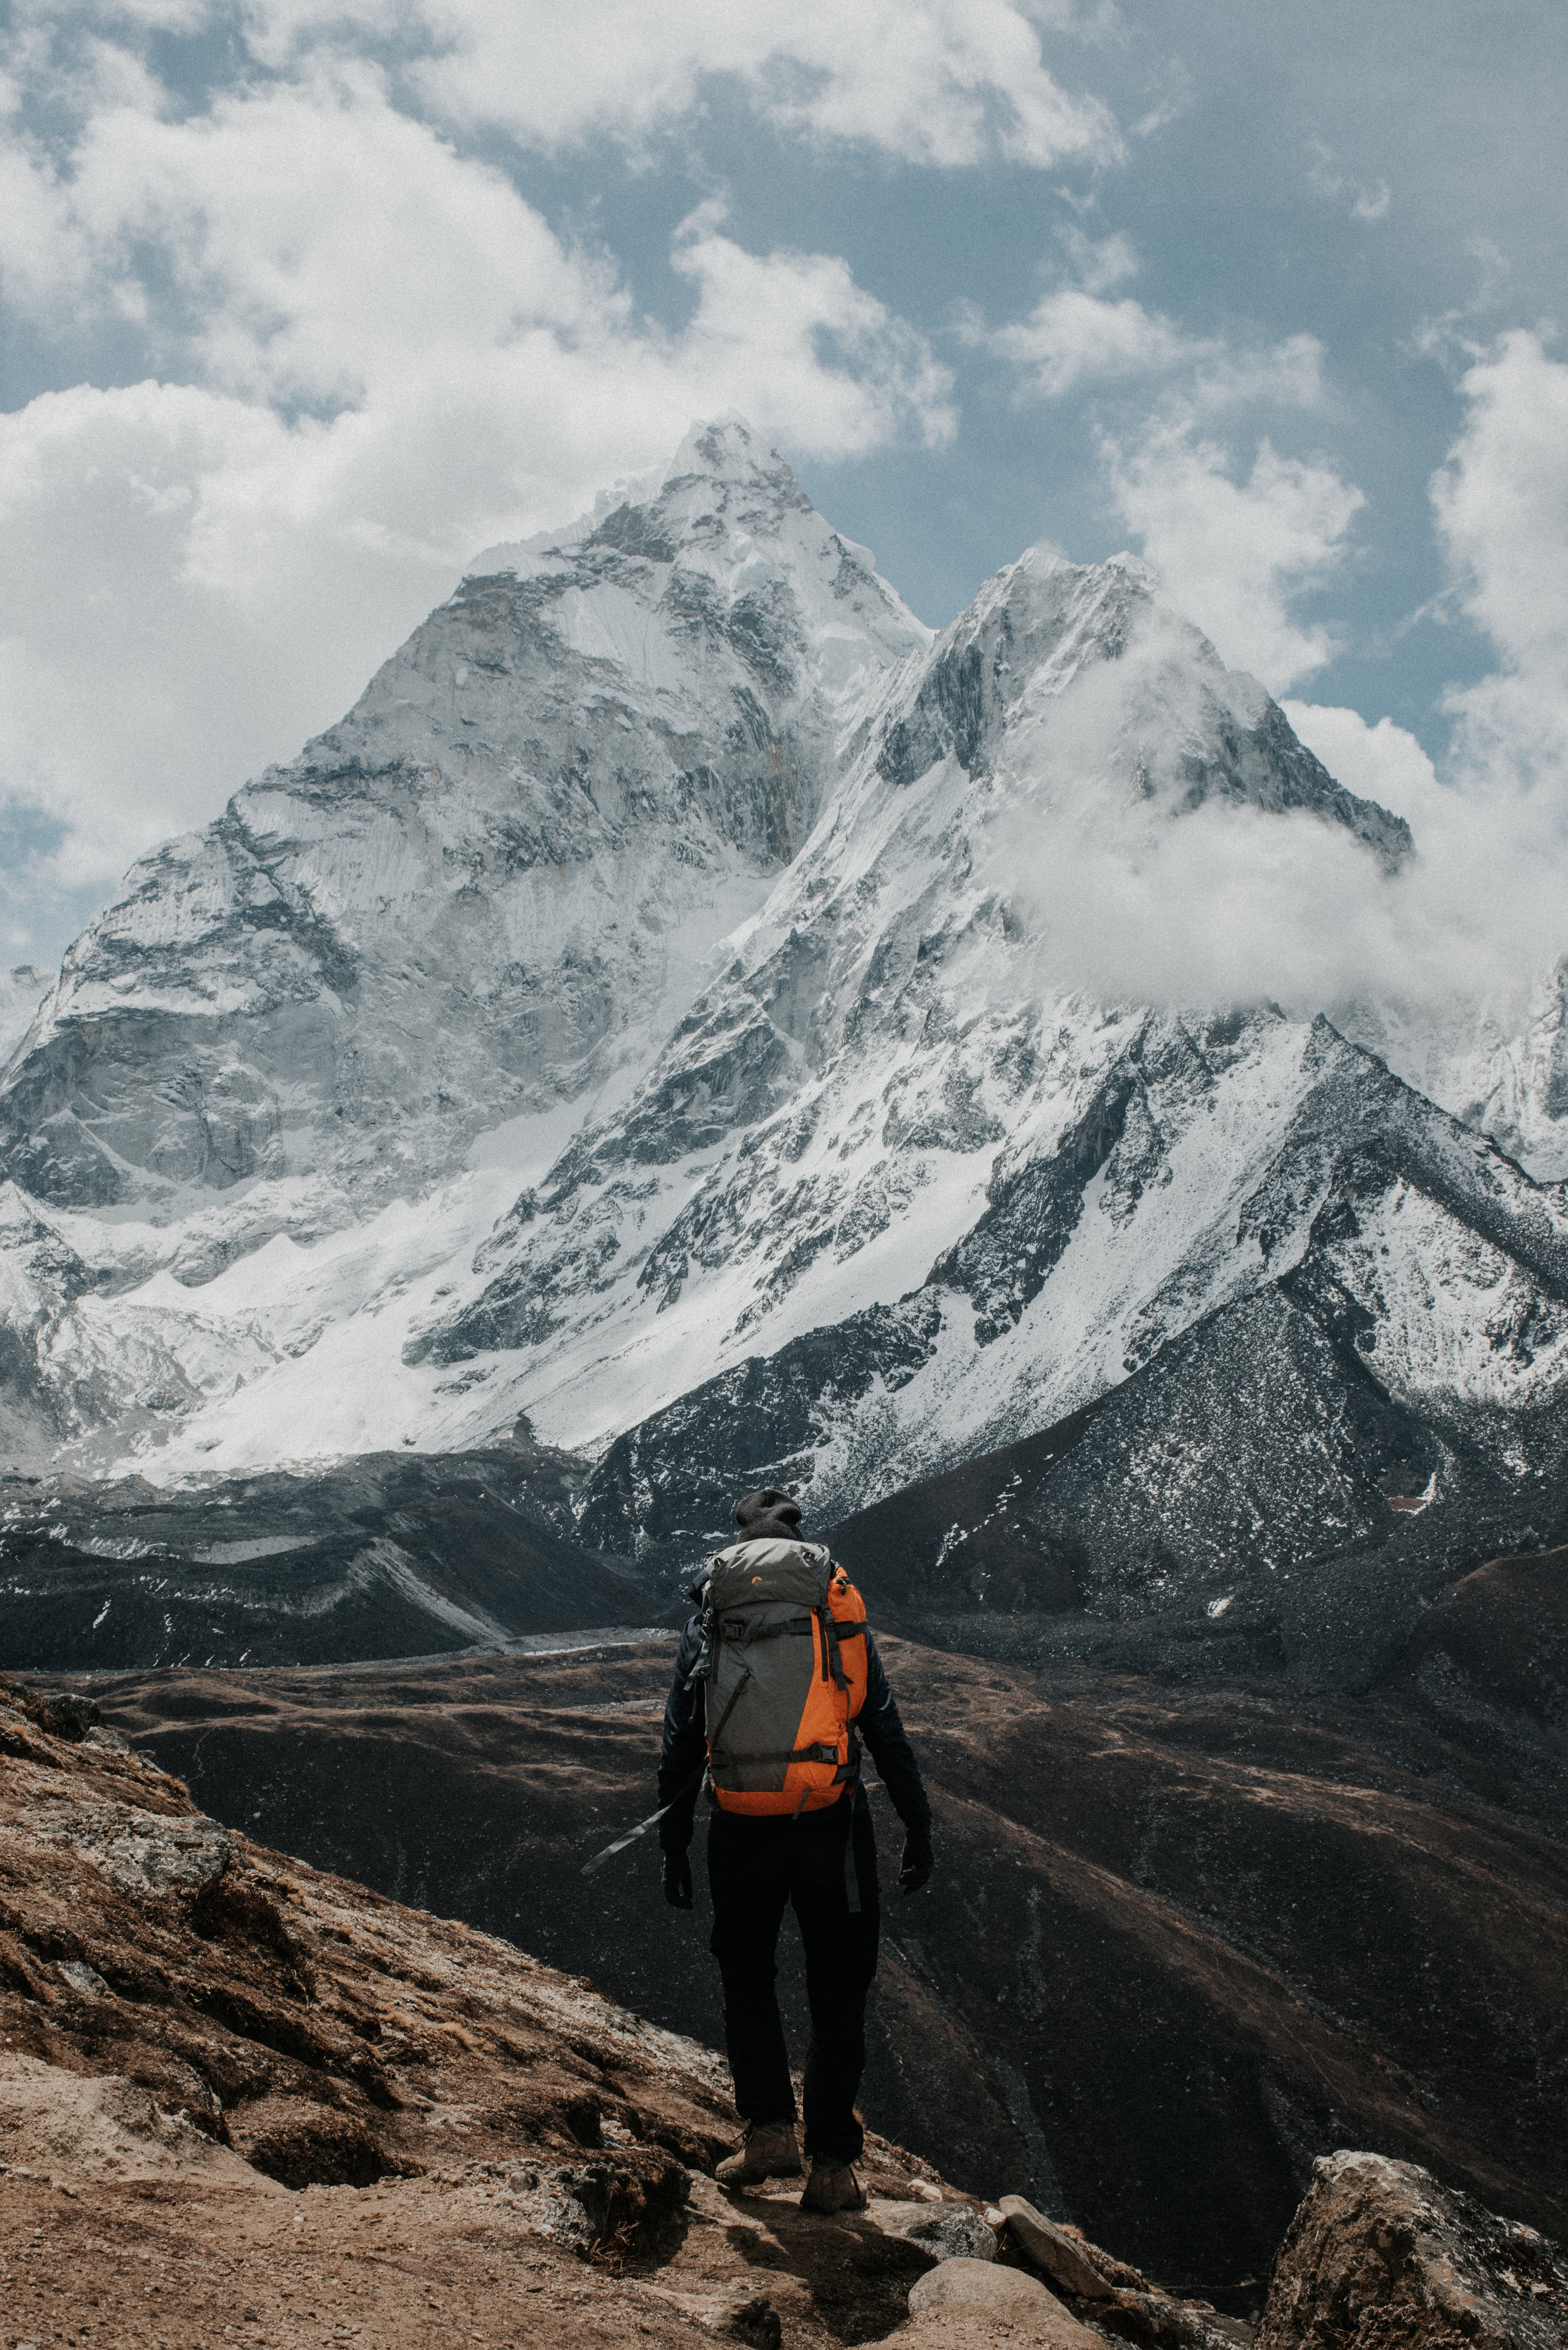 Nepal_EverestBaseCamp_2019_TaraShupe_Photography_DSC_4012.jpg